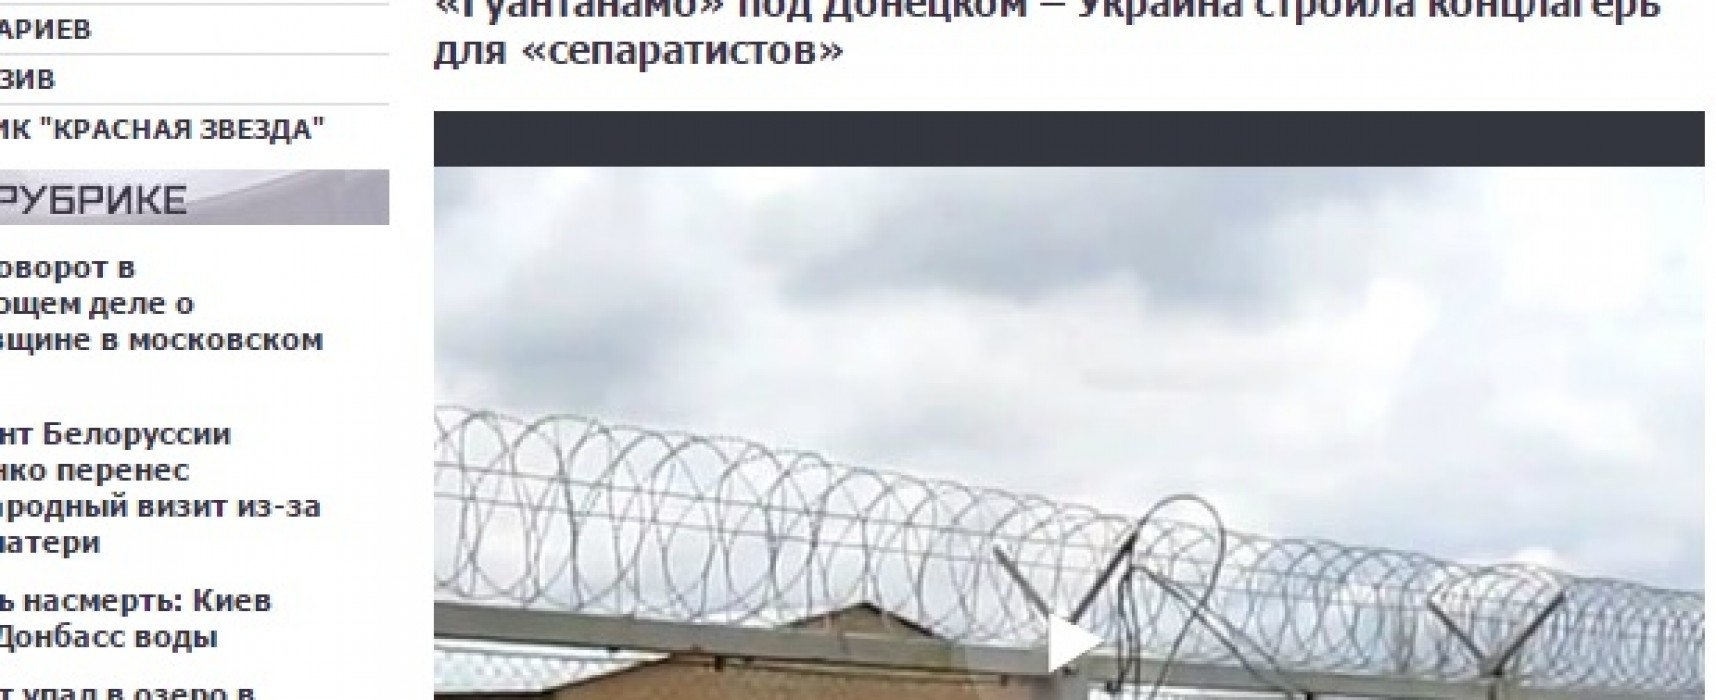 Fake: Concentration Camp for Separatists under Construction in Donetsk Region